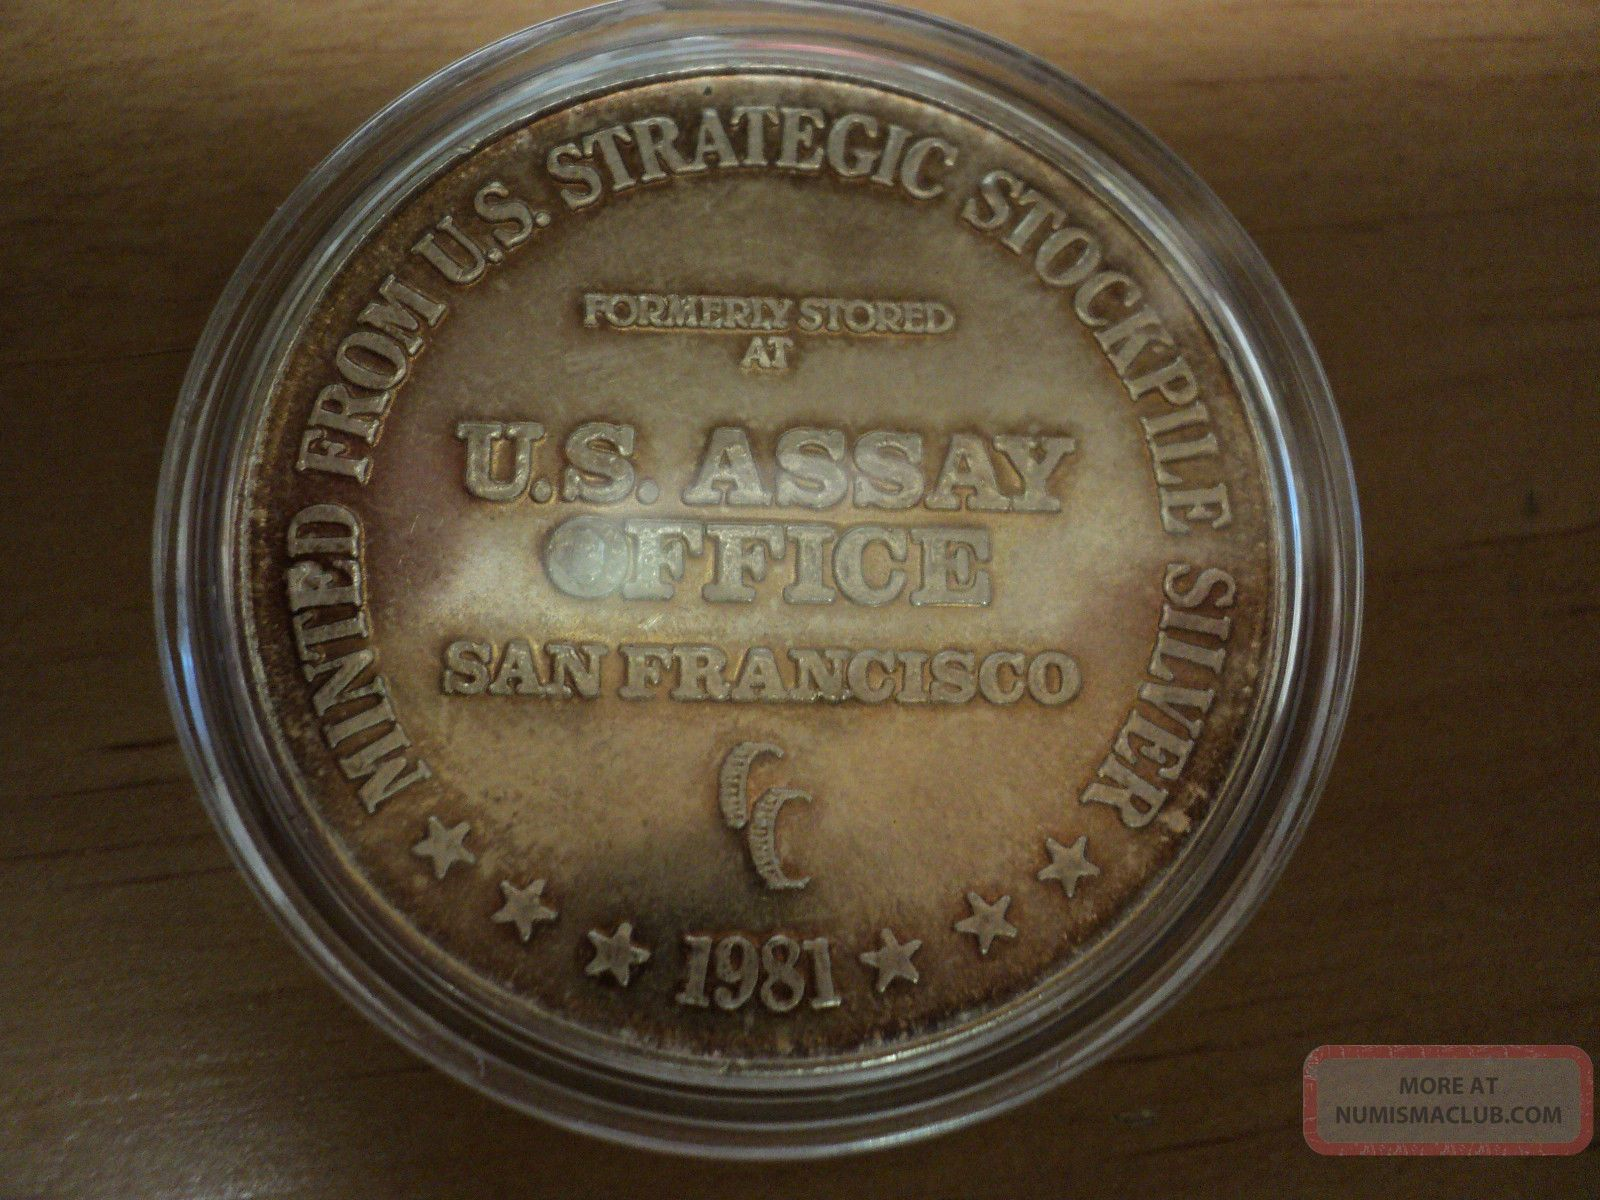 1981 U S Assay Office San Francisco One Troy Ounce